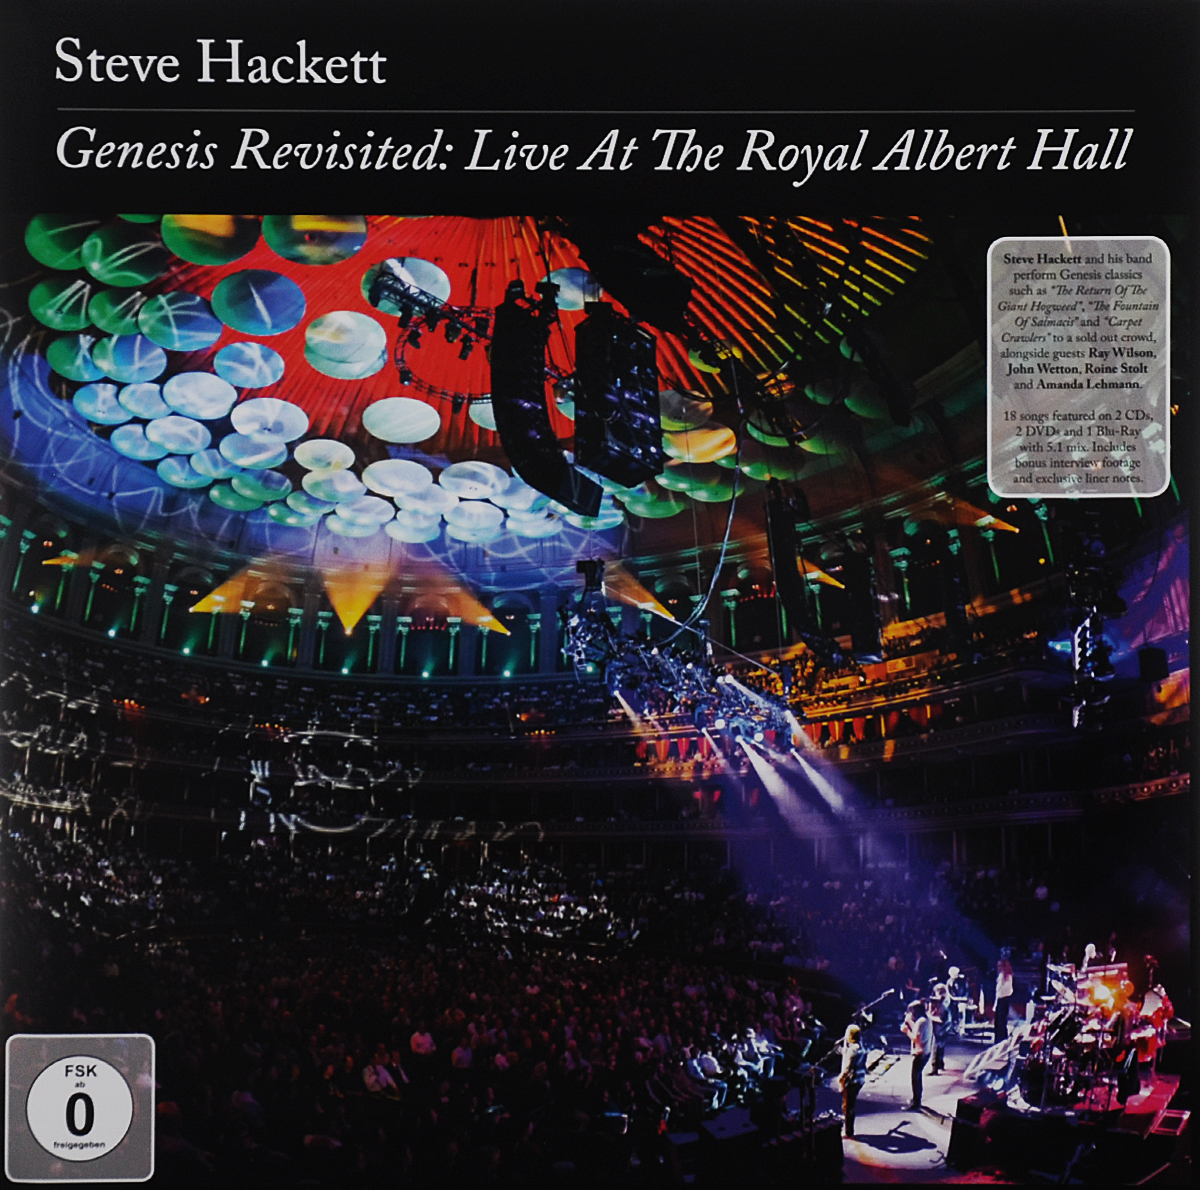 Стив Хэкетт Steve Hackett. Genesis Revisited. Live At The Royal Albert Hall (2 CD + 2 DVD + Blu-ray)